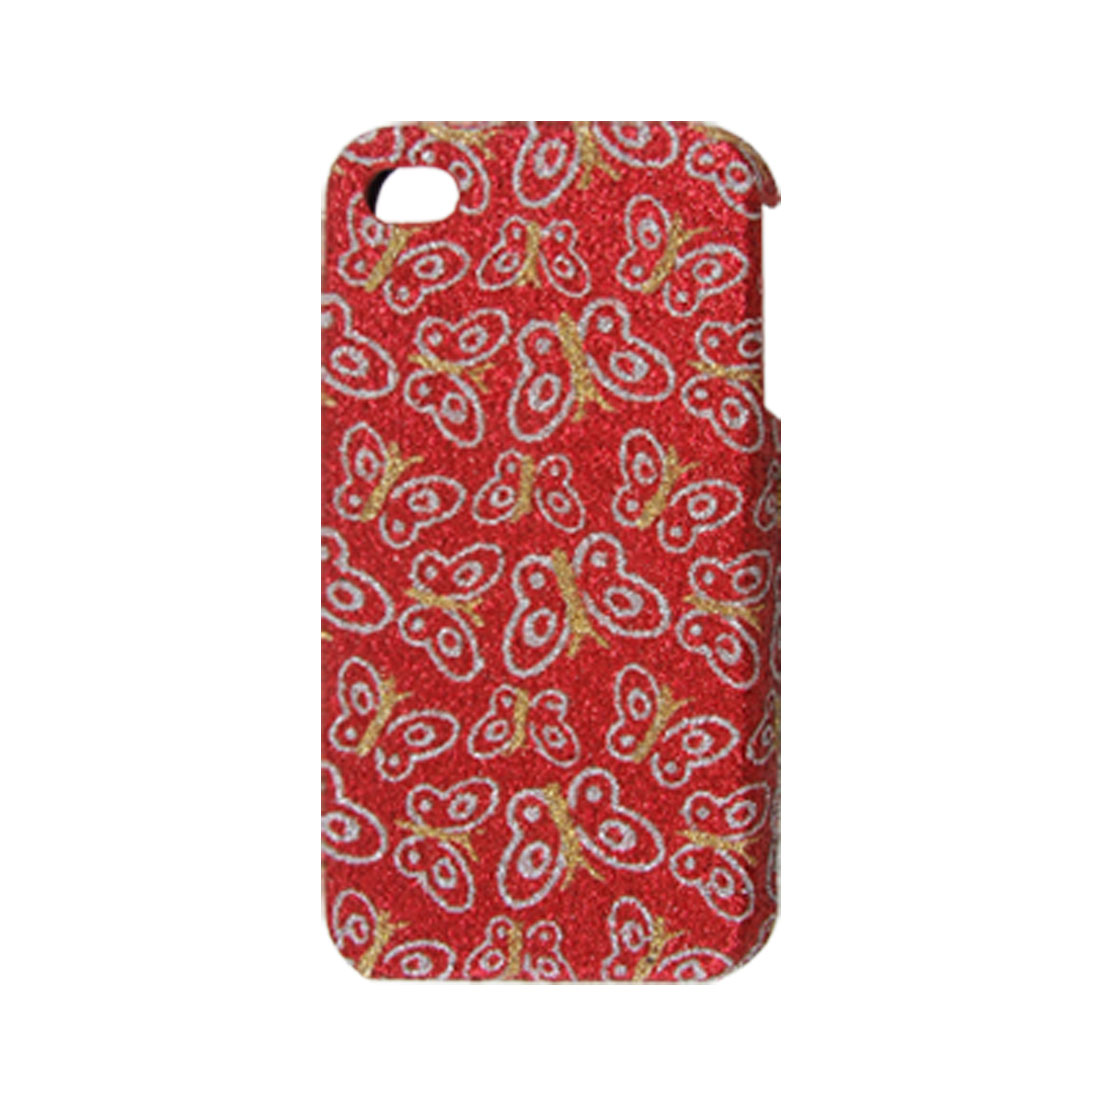 Butterfly Print Back Case Protector Red for iPhone 4 4G